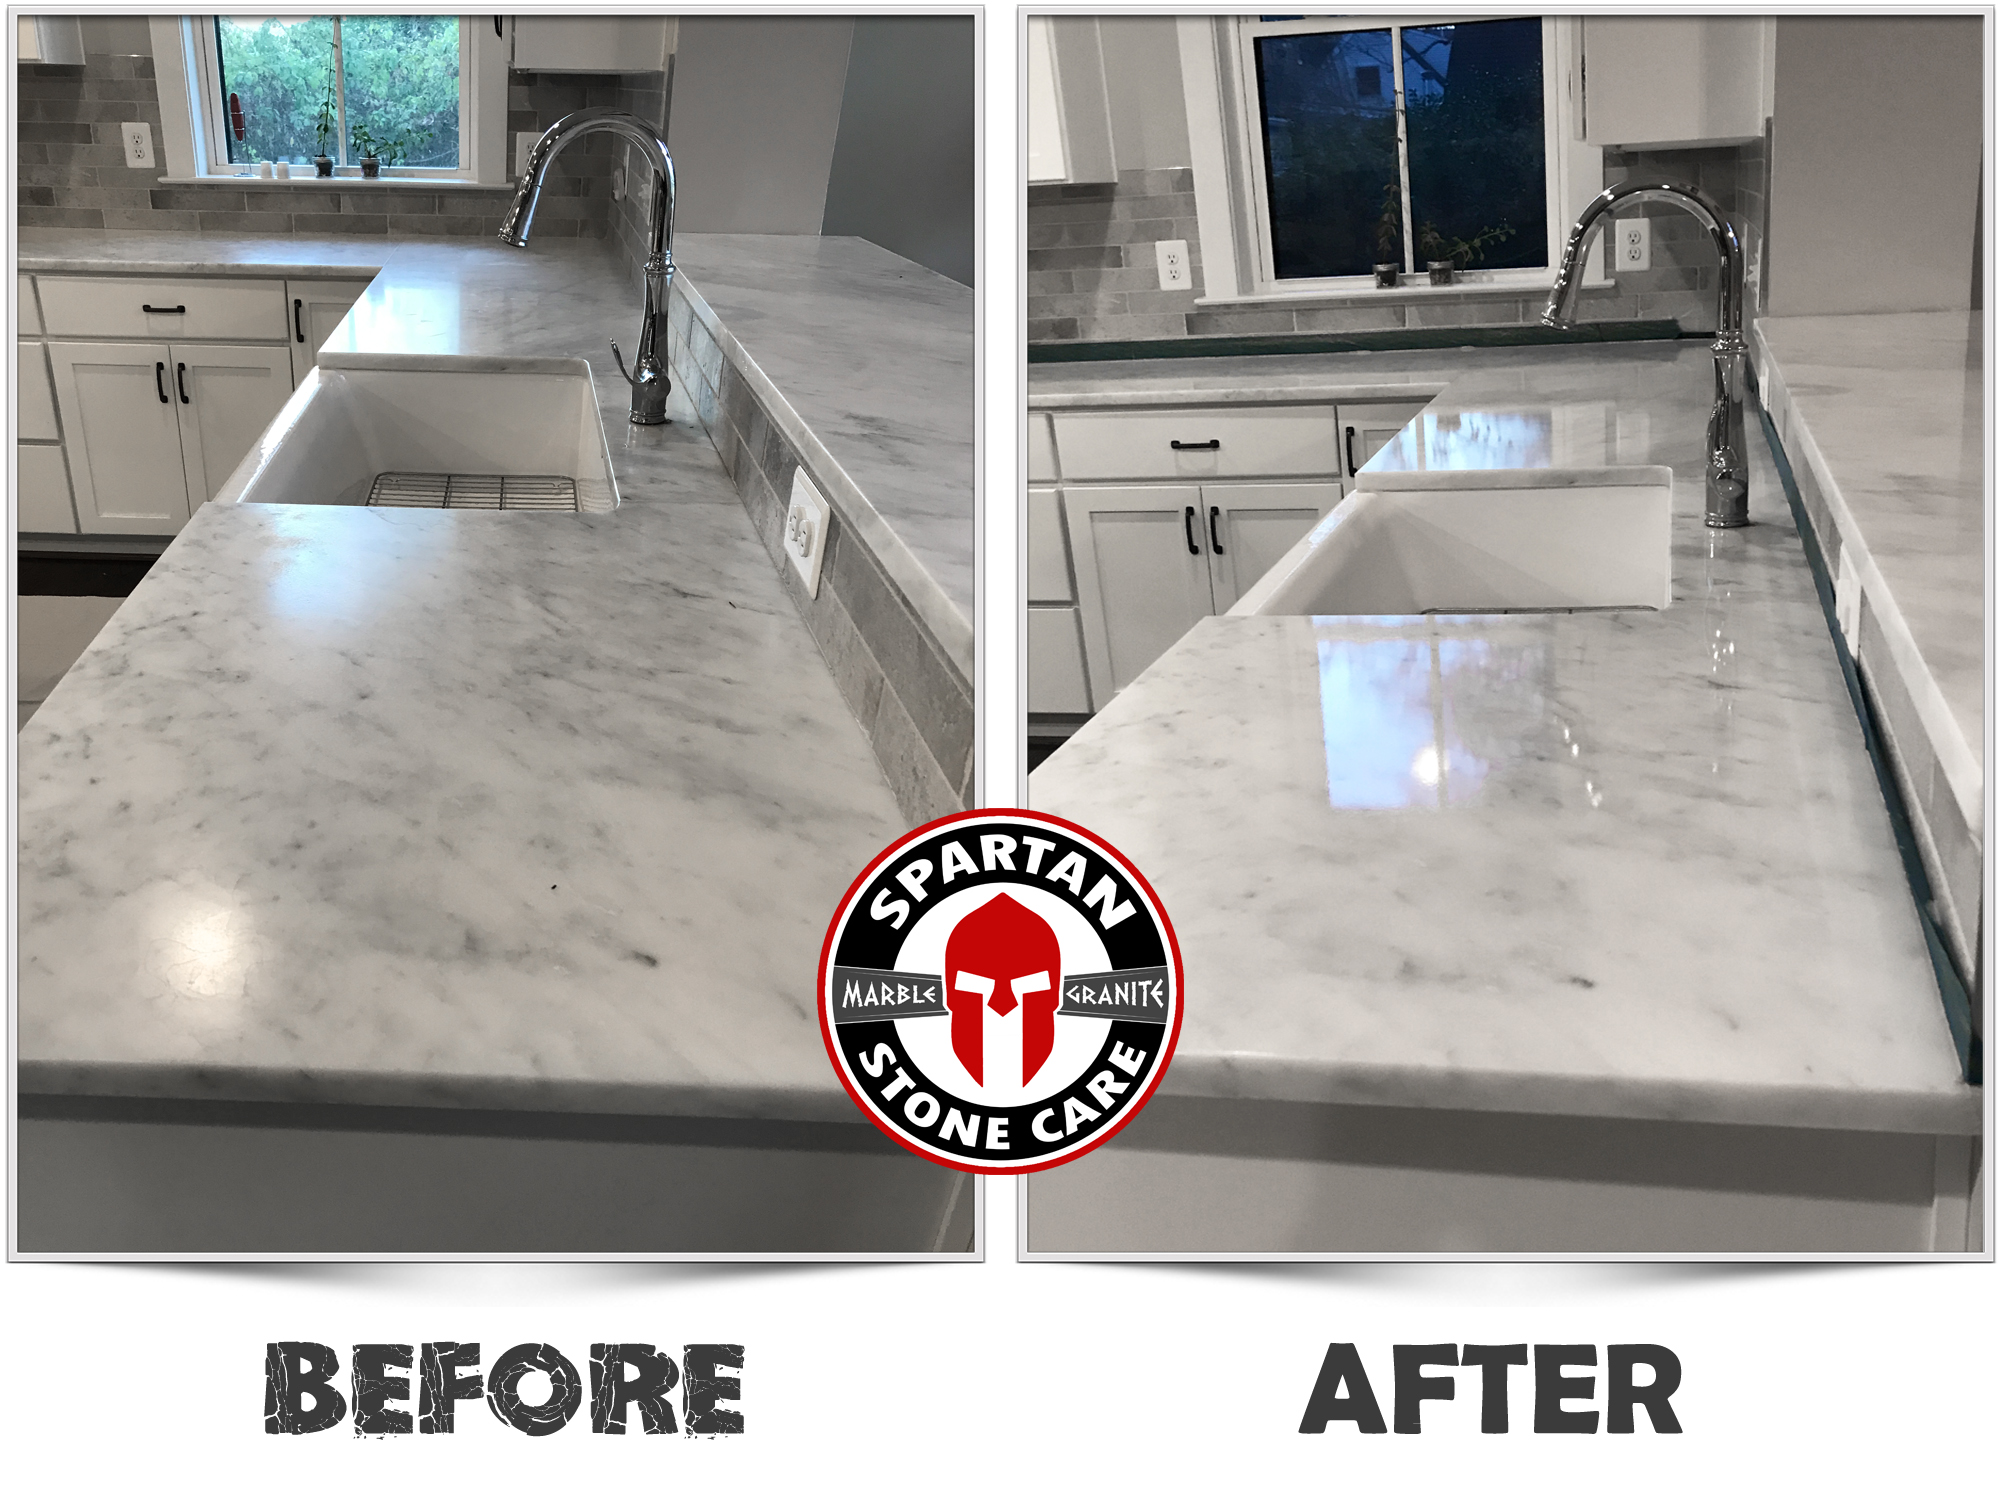 Spartan Stone Care - Marble Polishing in DC, MD, VA